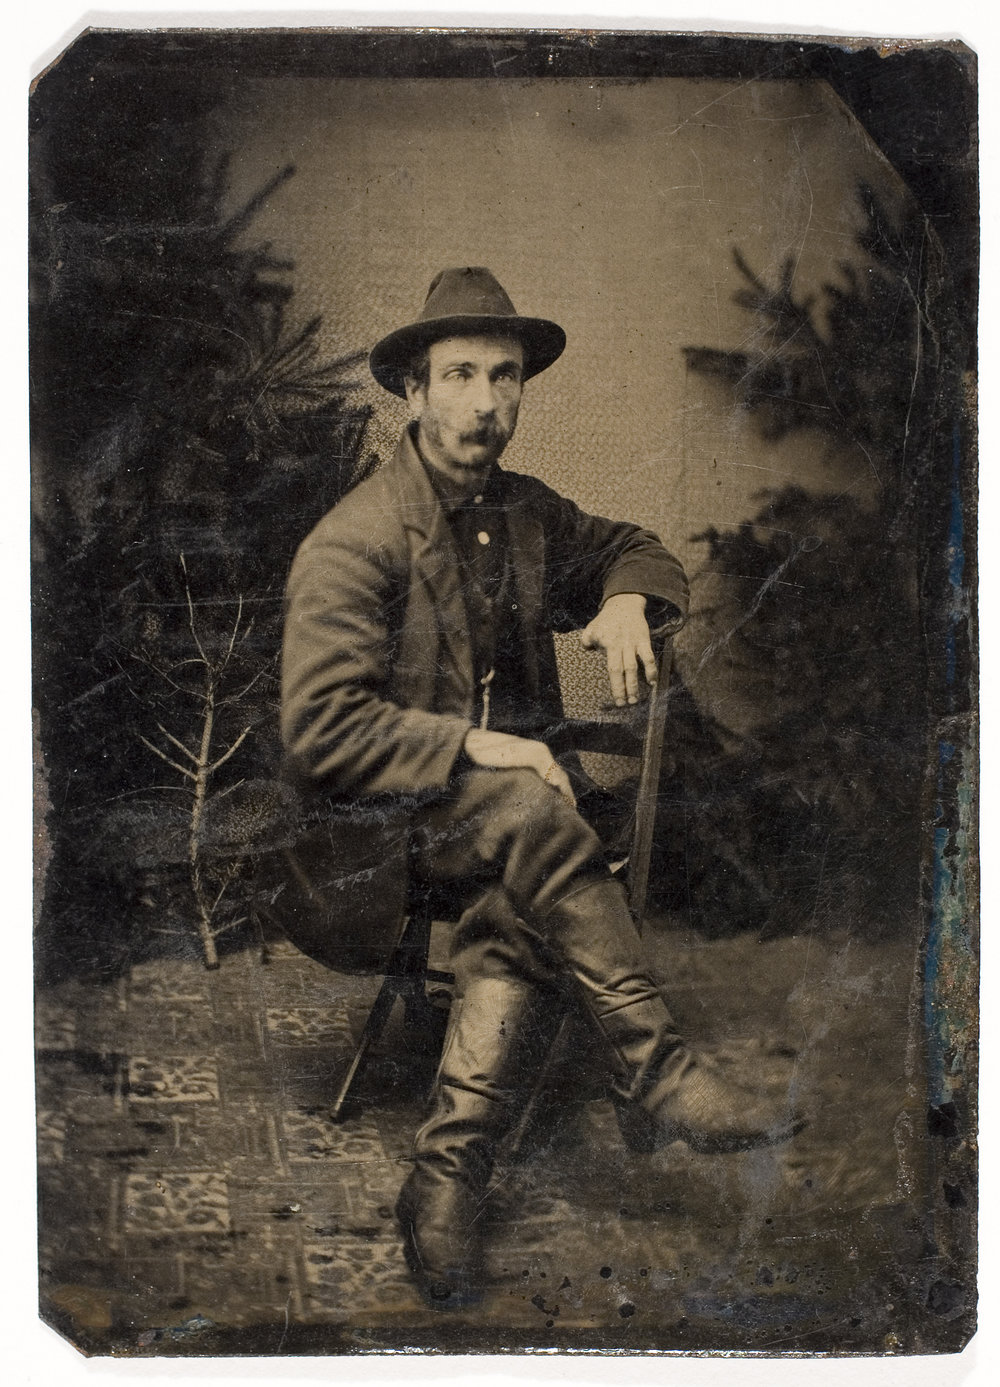 Unidentified Photographer, [Unidentified Man Missing Two Fingers],  ca. 1875. International Center of Photography, Gift of Steven Kasher, 2007 (2007.54.11)